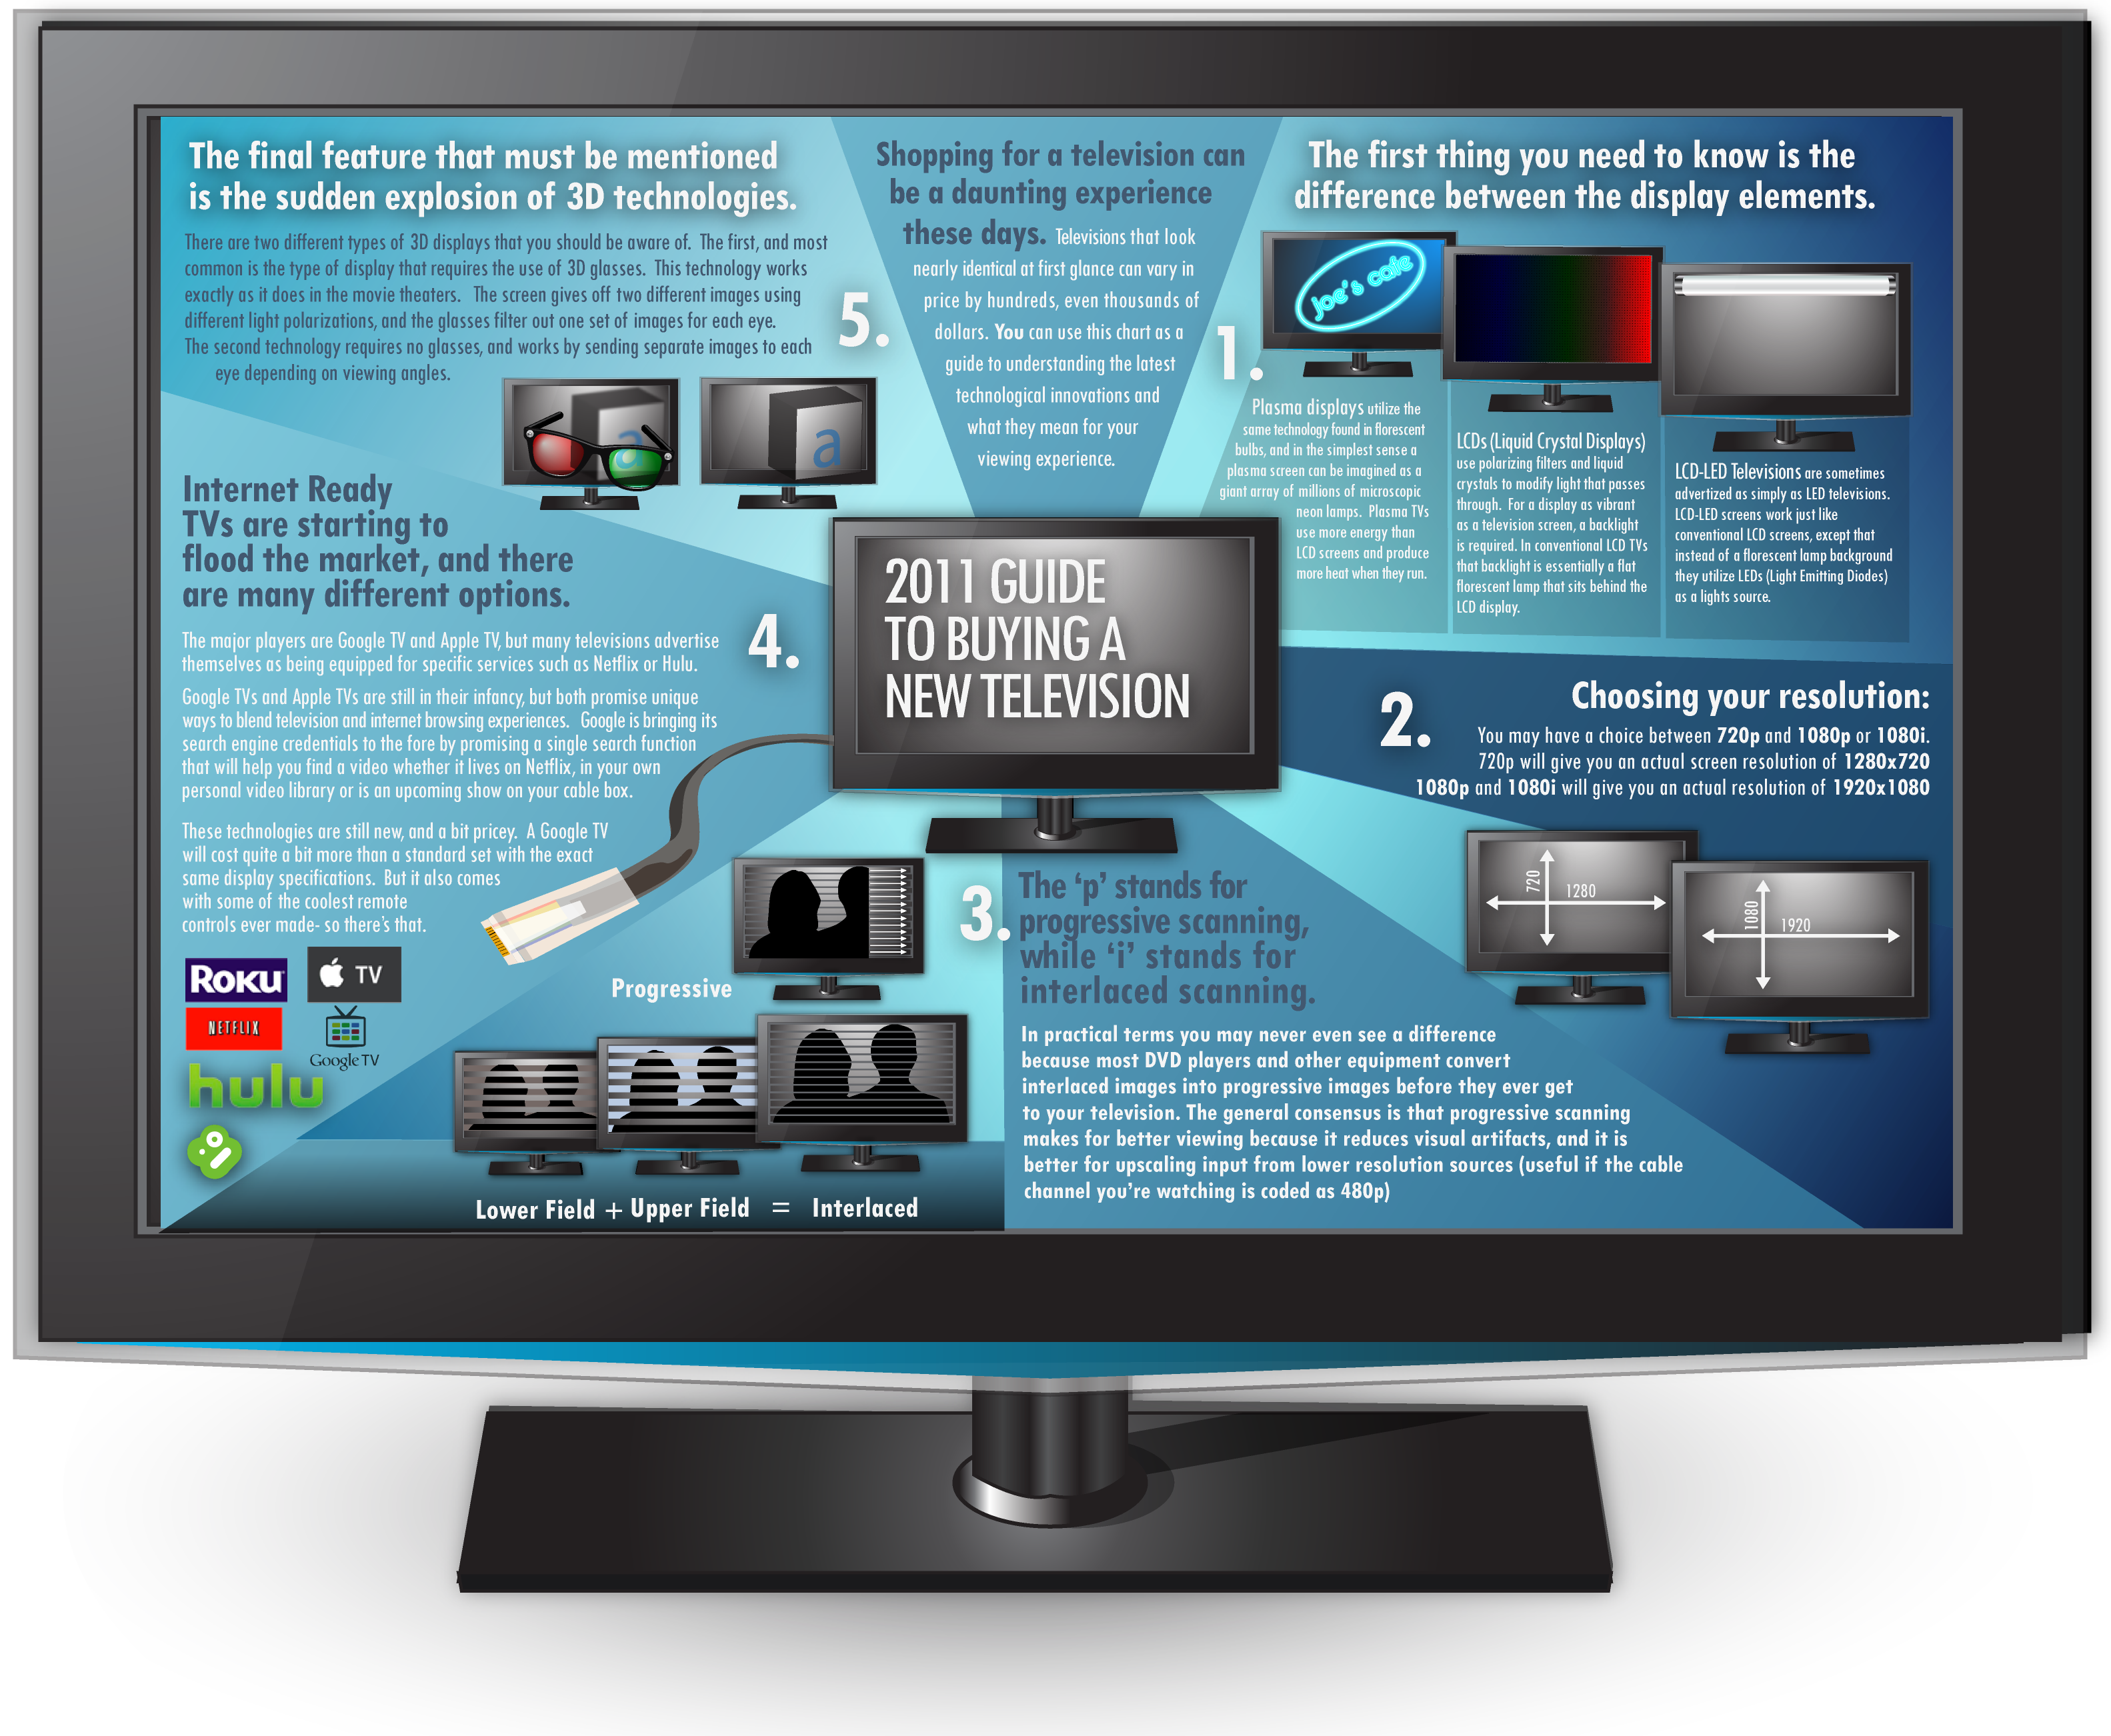 Tv Buying Guide 2011 Plasma Lcd Led Hd 3d Tv Feature Comparison Infographic Tv Buying Guide Flood 3d Tvs